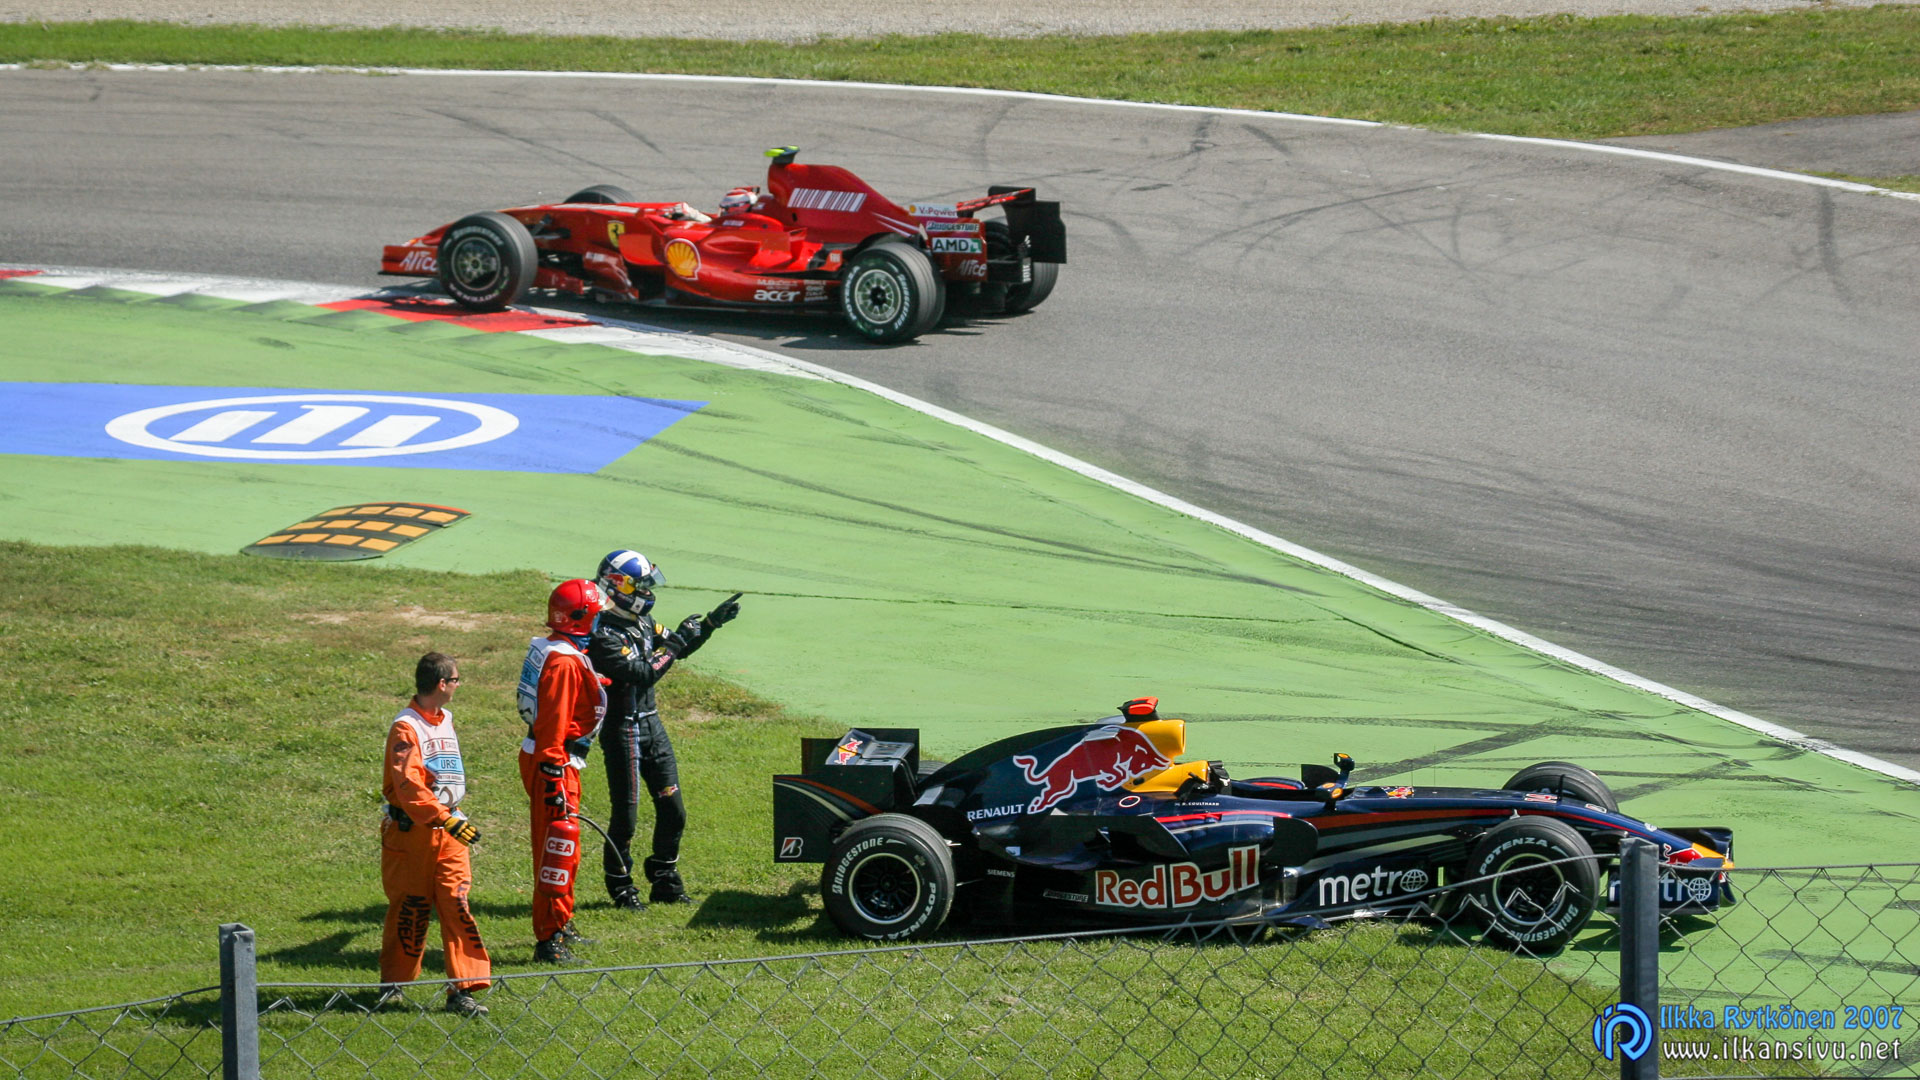 F1 aika-ajo Q1: David Coulthard, Red Bull Renault RB3